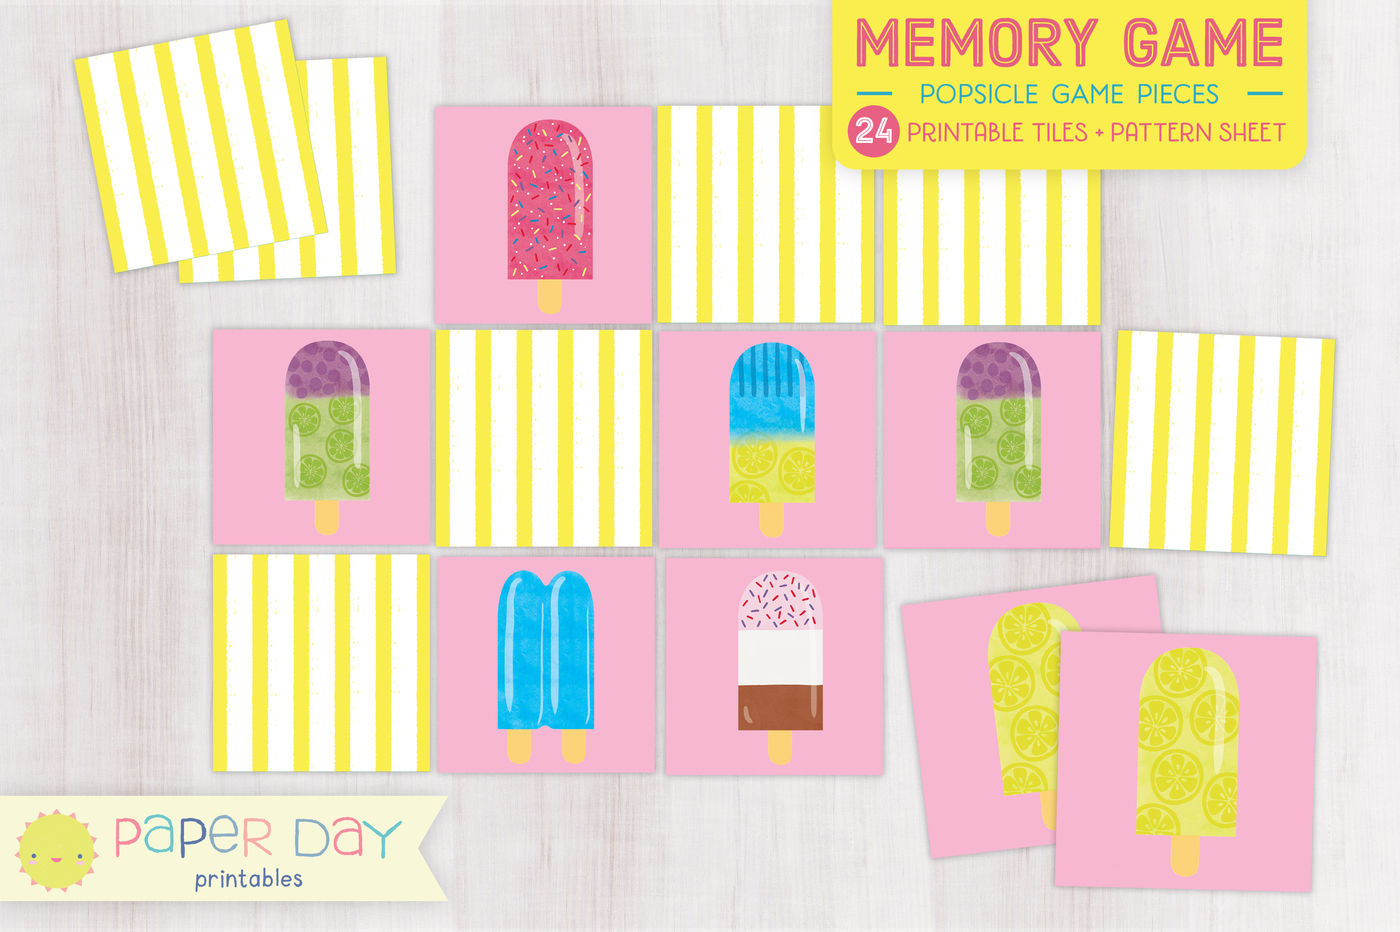 image regarding Popsicle Printable titled Printable Popsicle Memory Video game By means of Paper Working day Printables